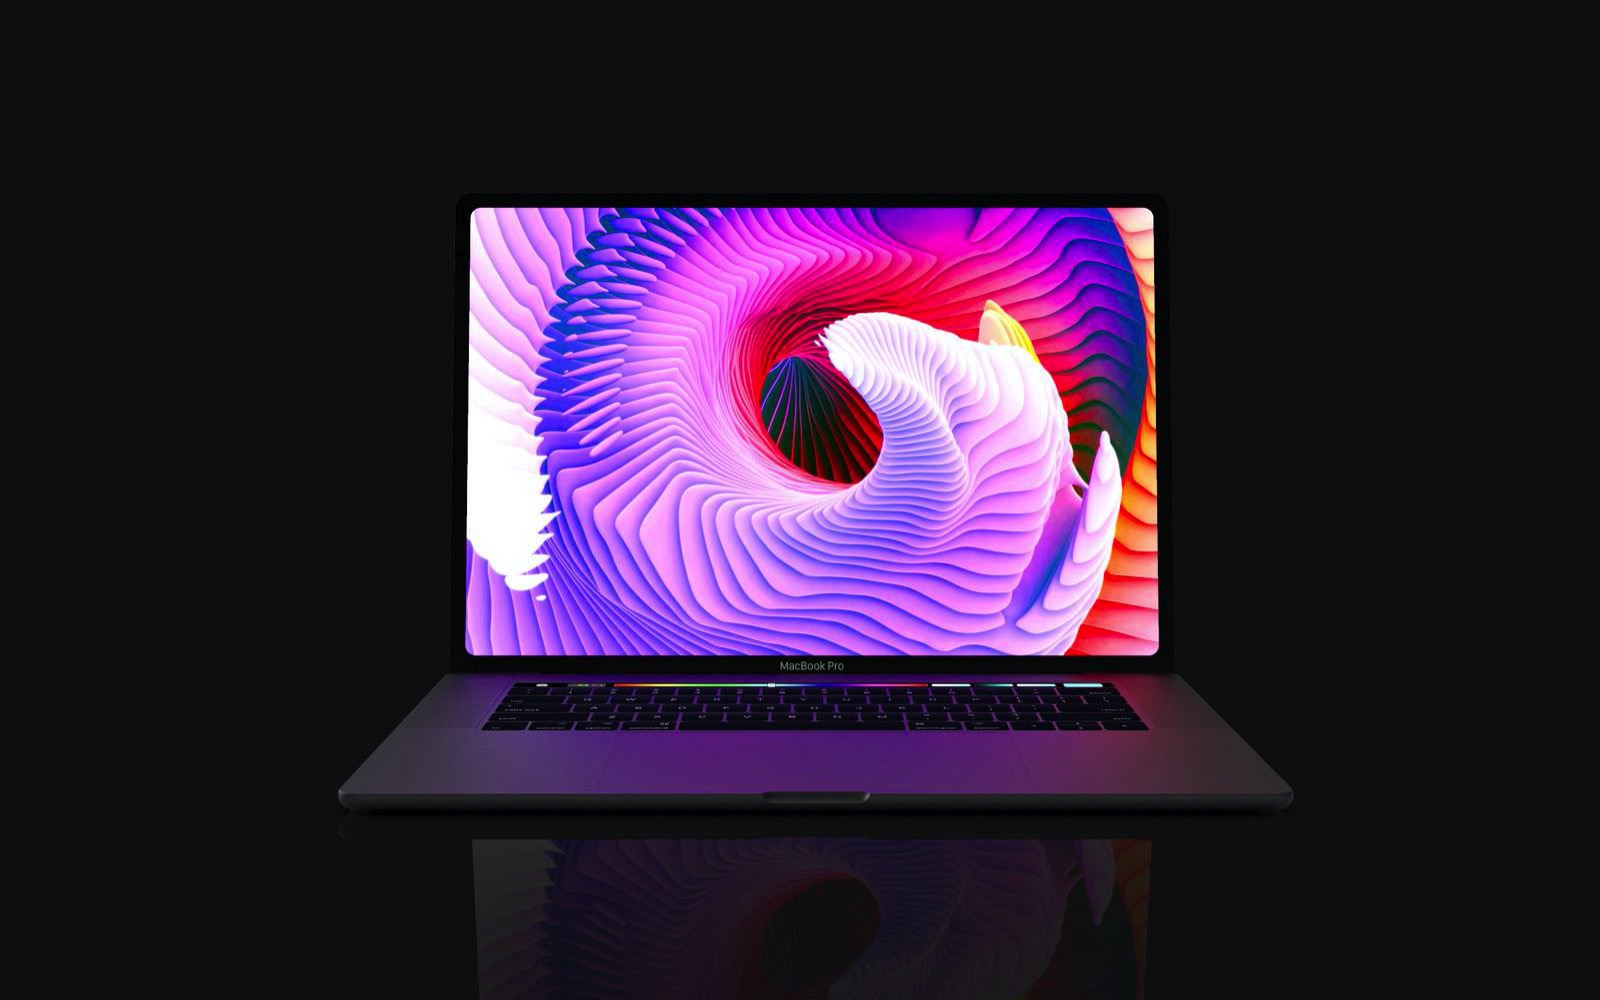 MacBook Pro 16inch model concept image 01